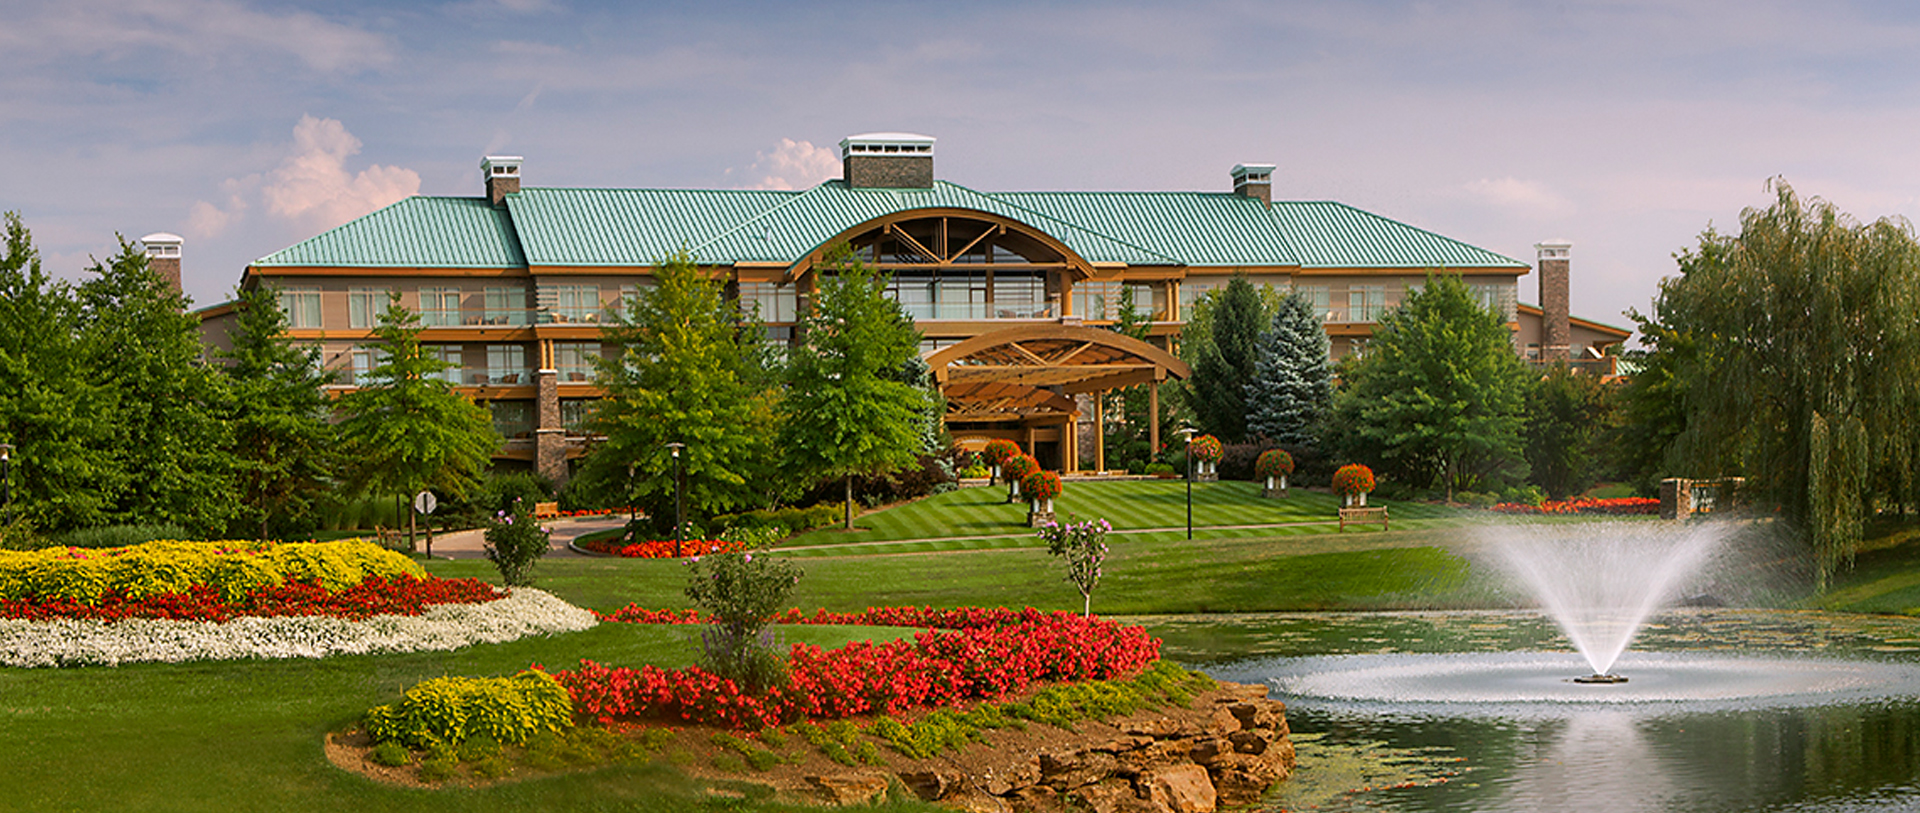 Turning Stone Ranked in Top 5 Resorts